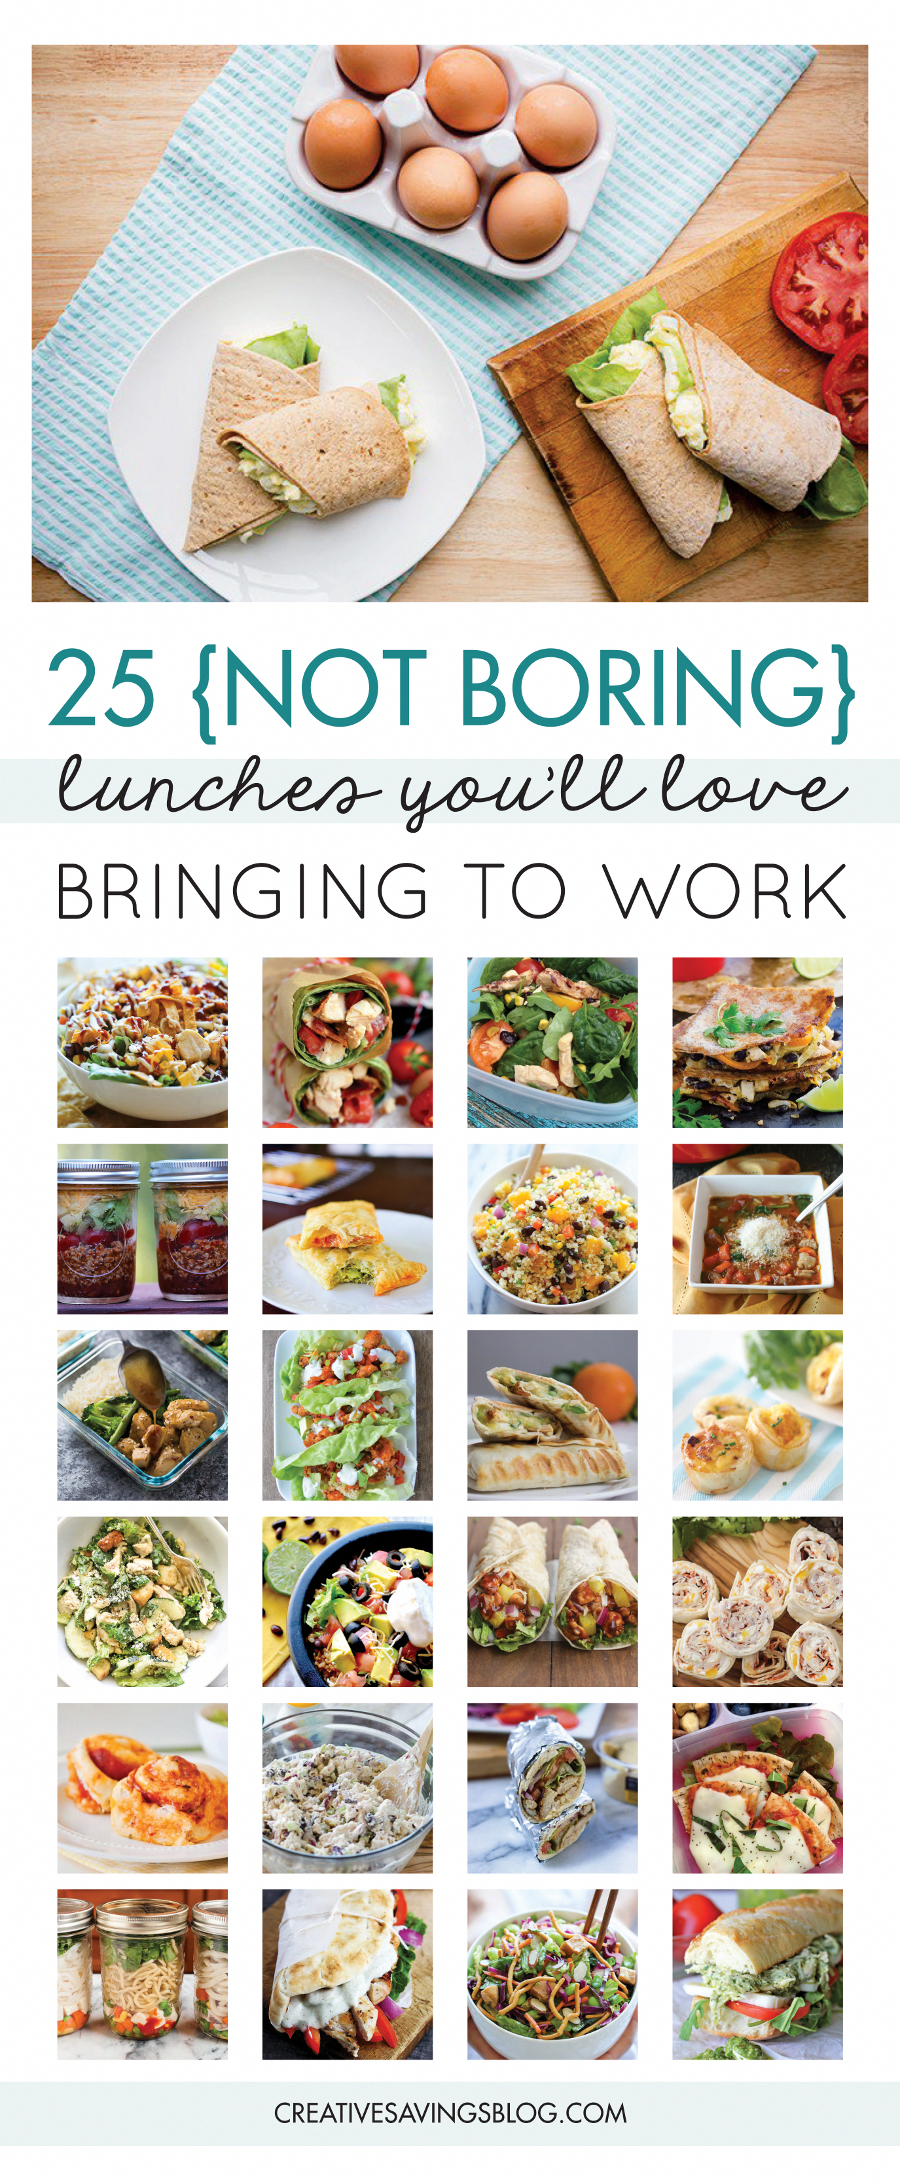 Pack your lunch. It's such a simple statement, but did you know this simple act can save you $500 or more each year?! So what's holding you back? Do you need packed lunch ideas...or more specifically work lunch ideas? These 7 creative ways to avoid the eating out trap at work, will not only save money, they'll also help jumpstart a healthy lifestyle. Let's face it—healthy work lunches make you feel 100 times better than greasy fast food ever could! via @cr #healthylifestyle